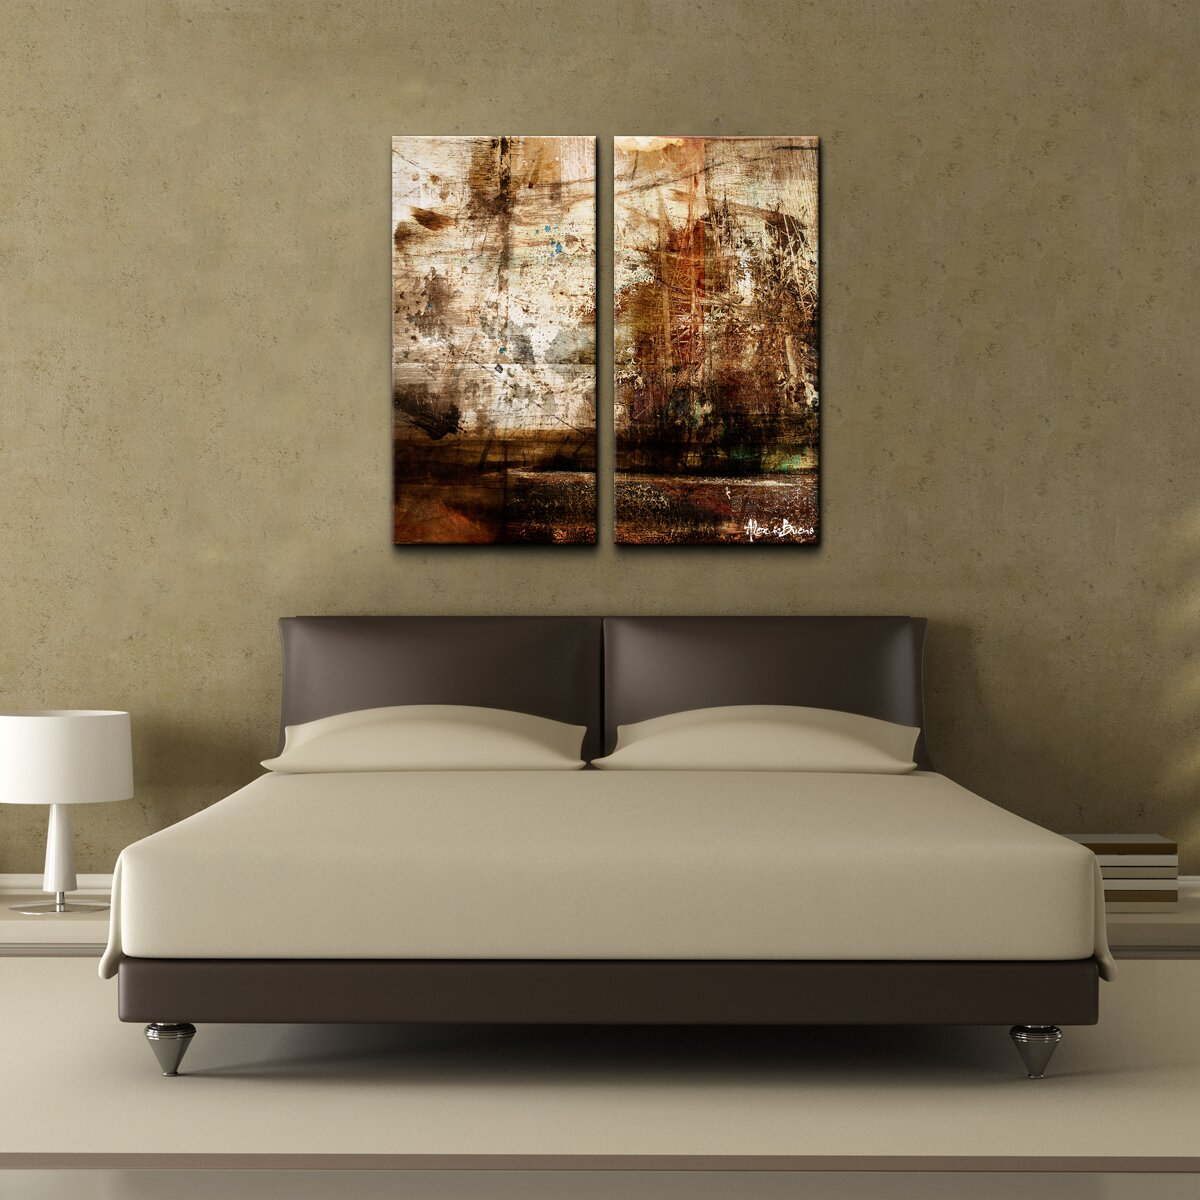 Ready2hangart oversized abstract 2 piece print of painting for Ready set decor reviews